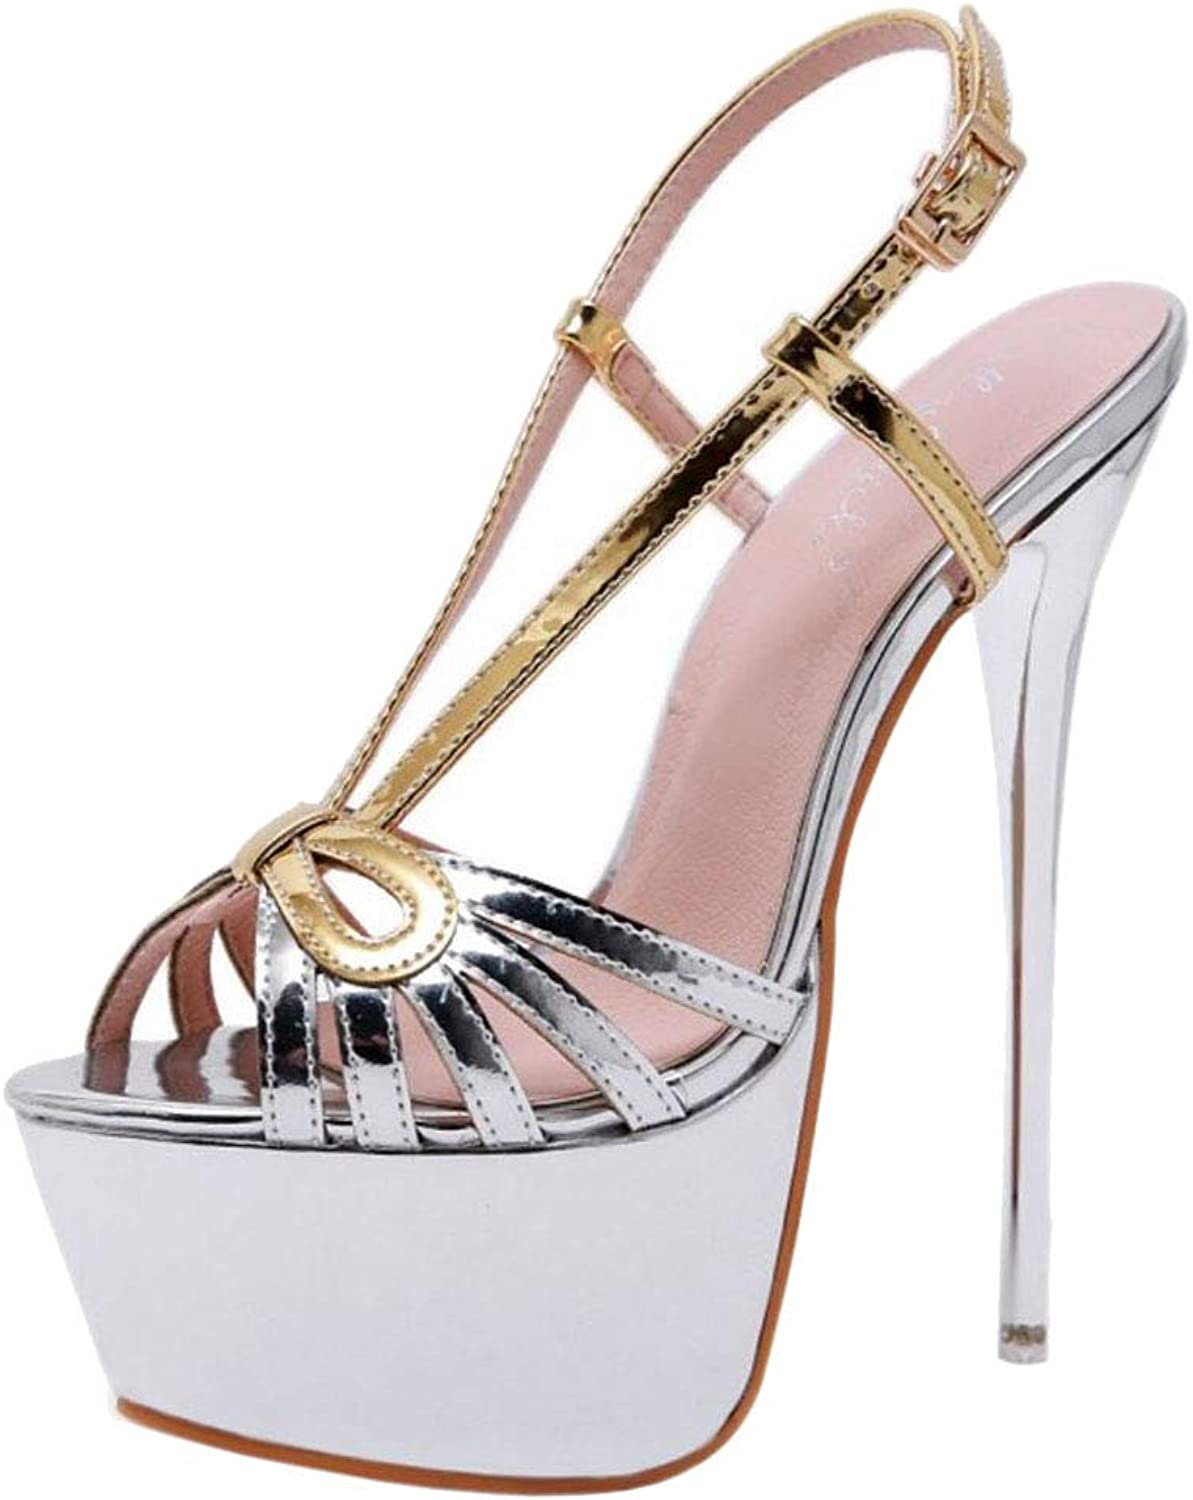 Lydee Women Fashion Summer shoes Stiletto Heels Slingback Party Sandals 17cm Height